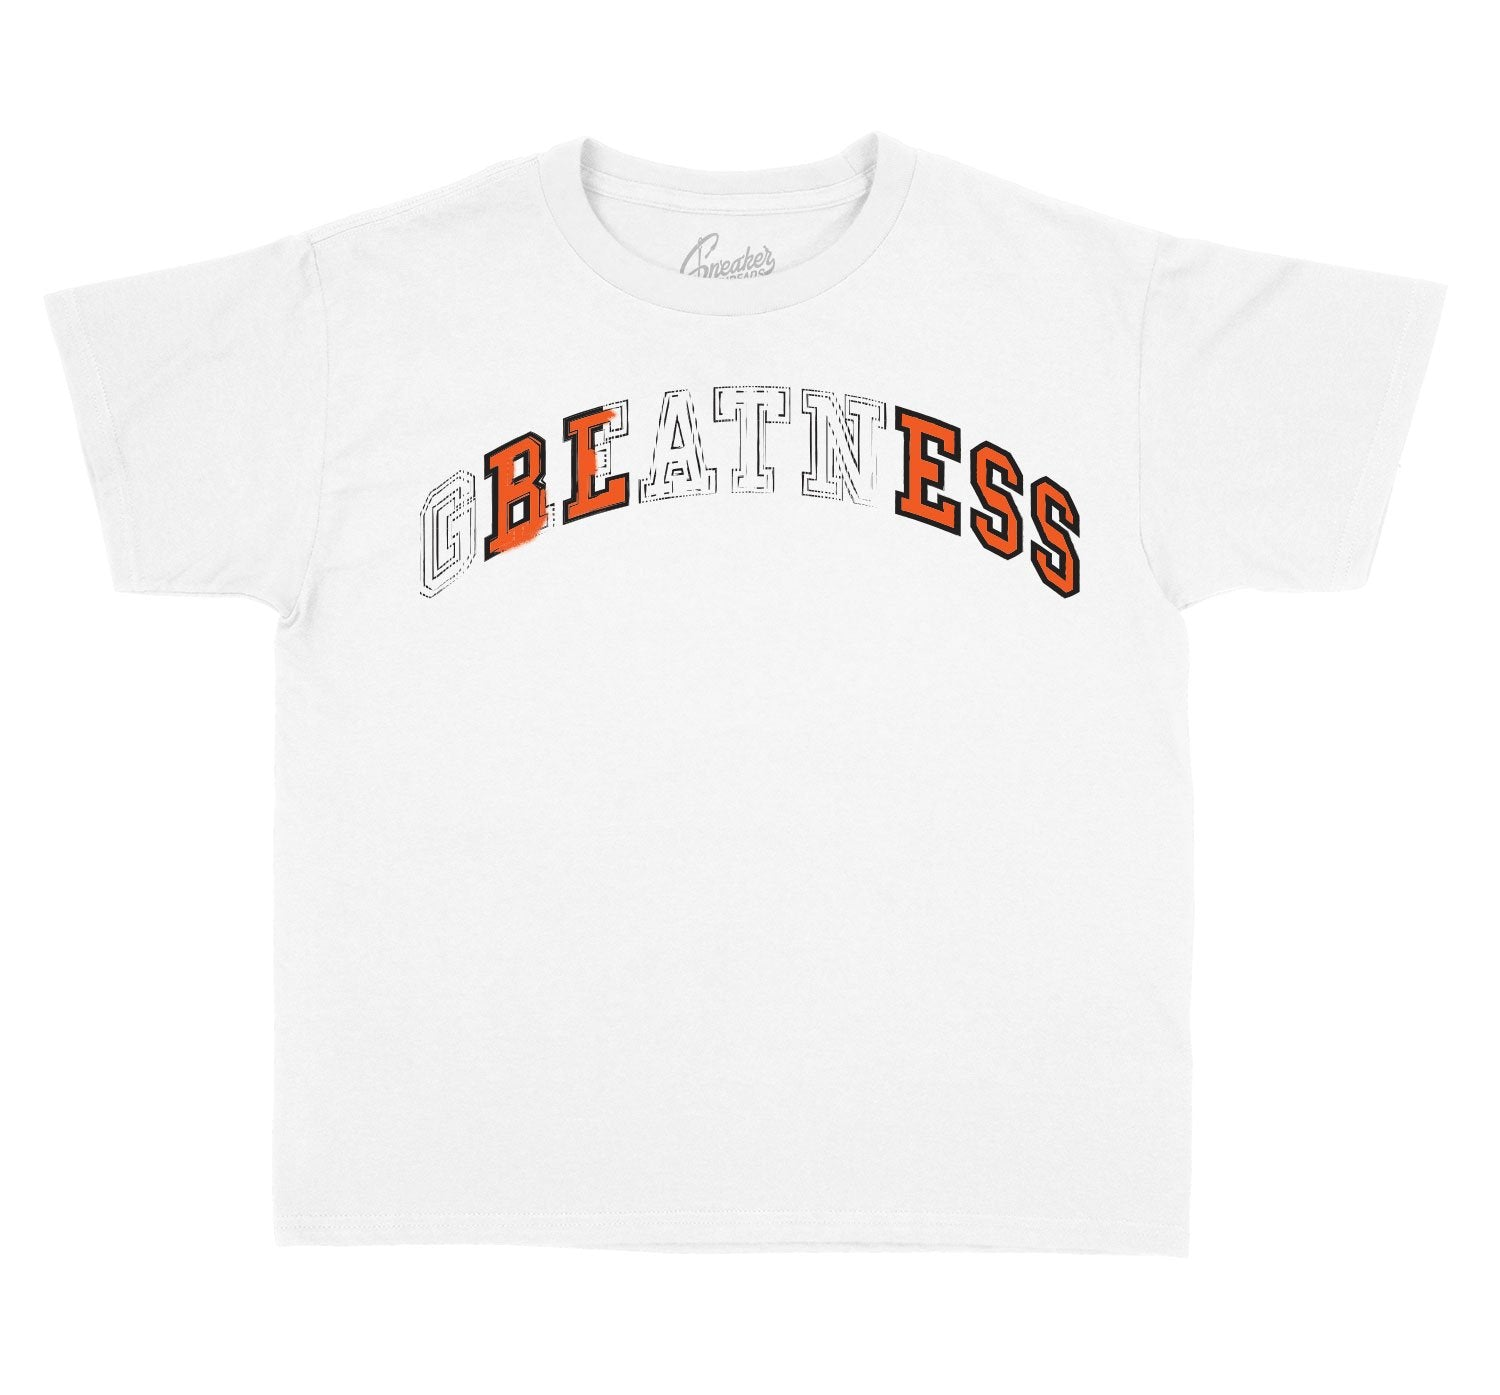 Kids tees created to match the foamposite sneaker shattered backboards